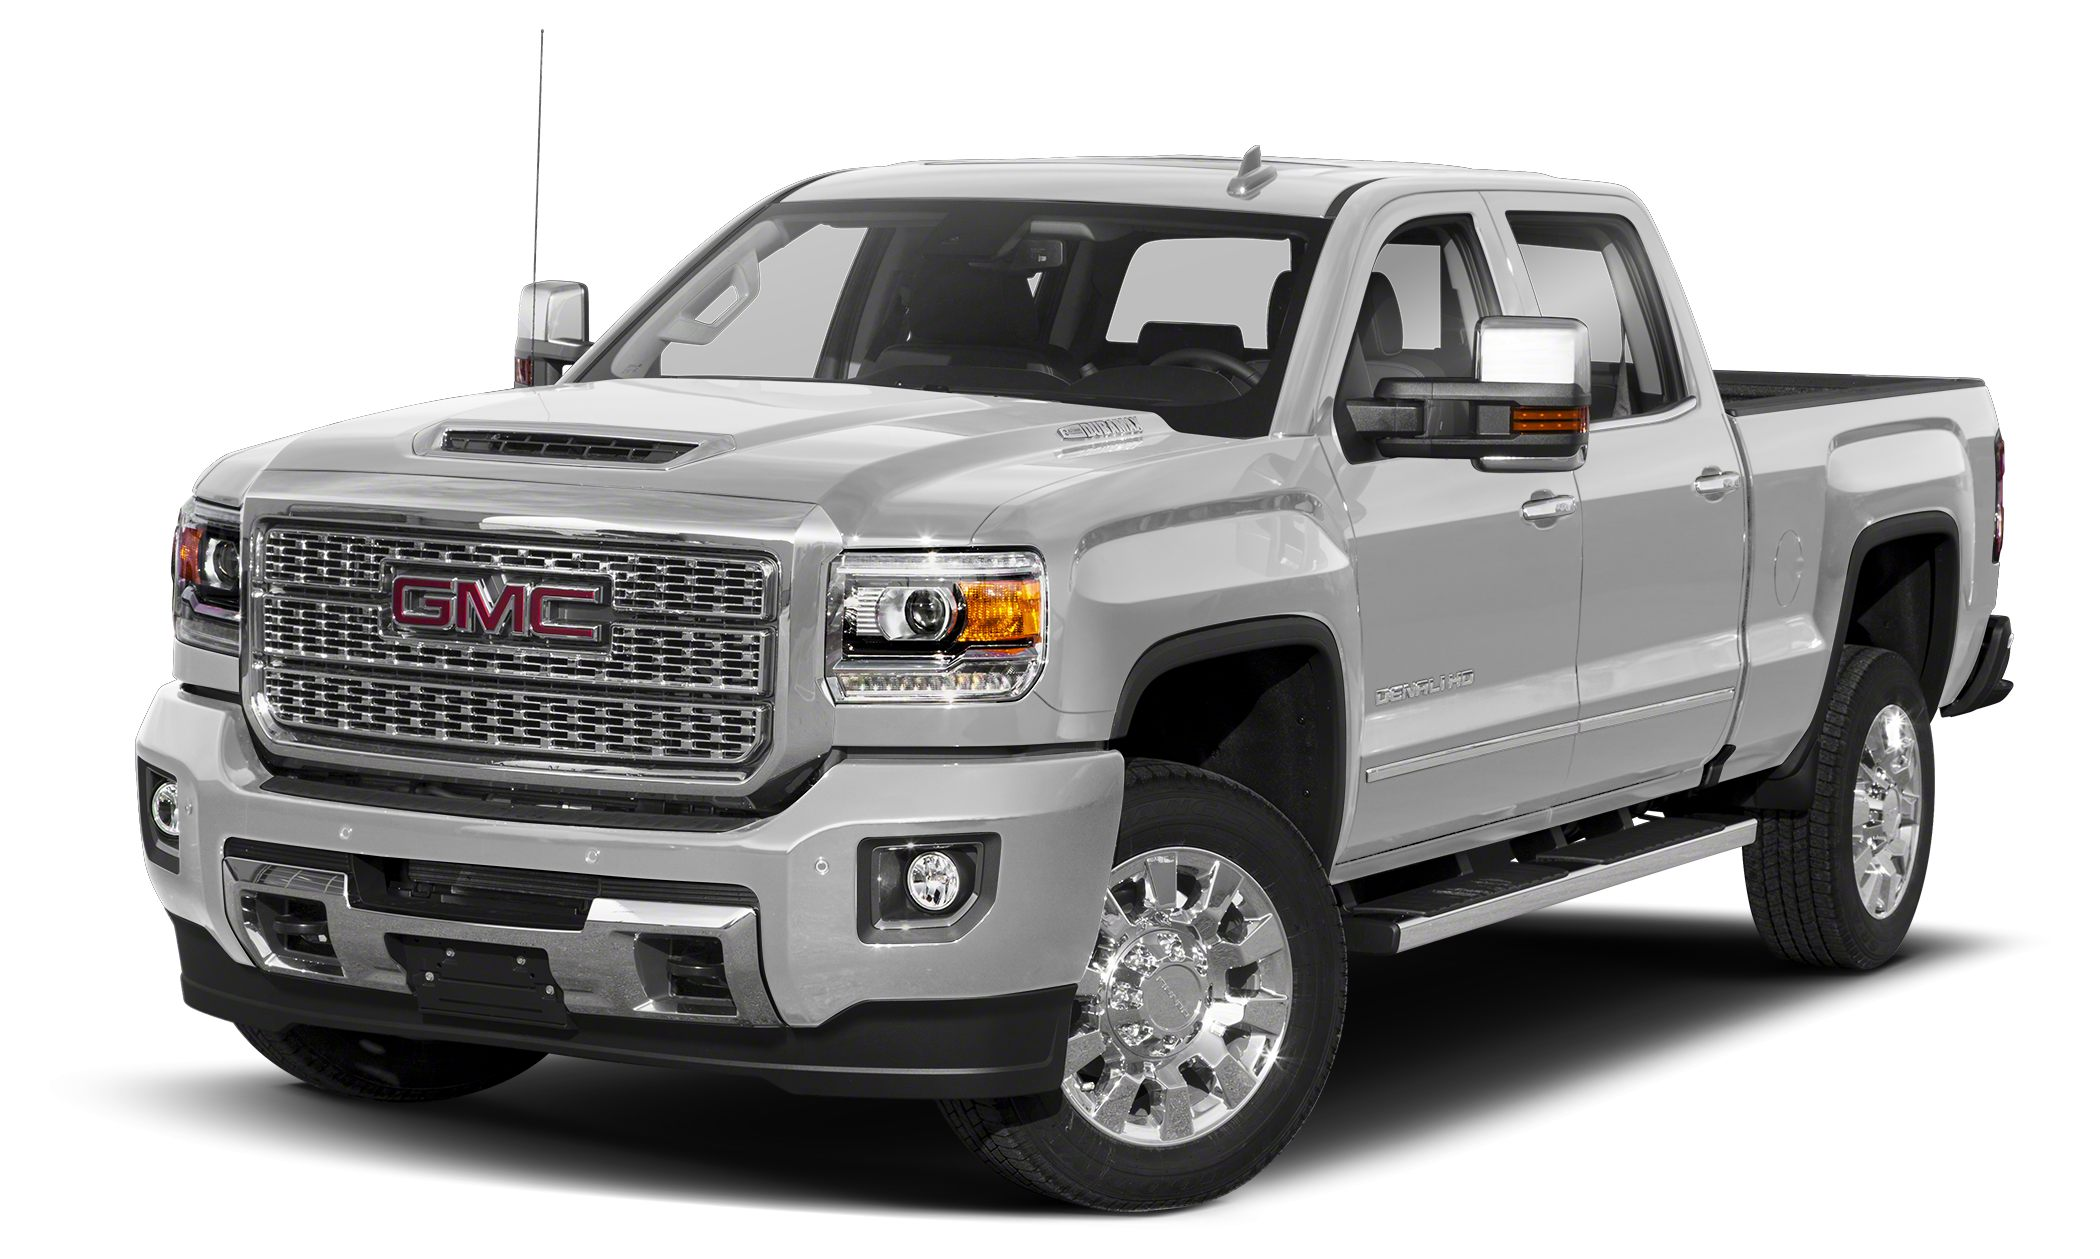 2018 GMC Sierra 2500HD Denali When youre ready for an automotive upgrade try this 2018 GMC Sierr